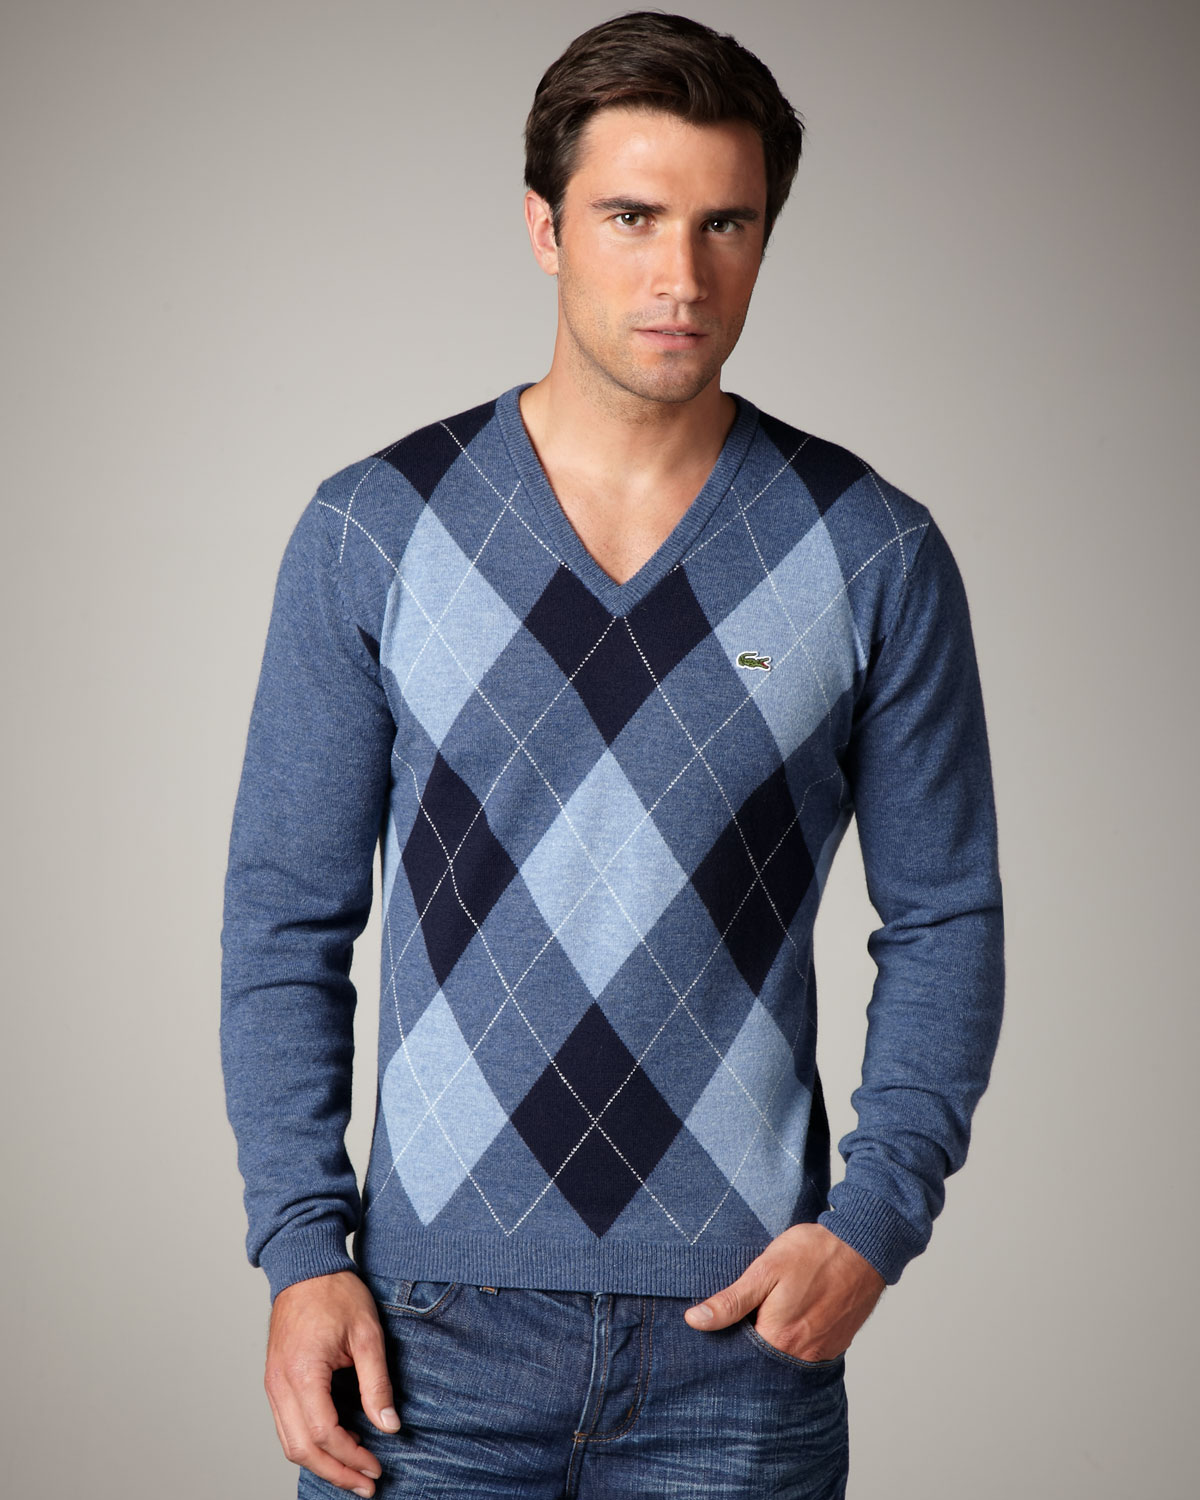 Find great deals on eBay for mens argyle sweater m. Shop with confidence.